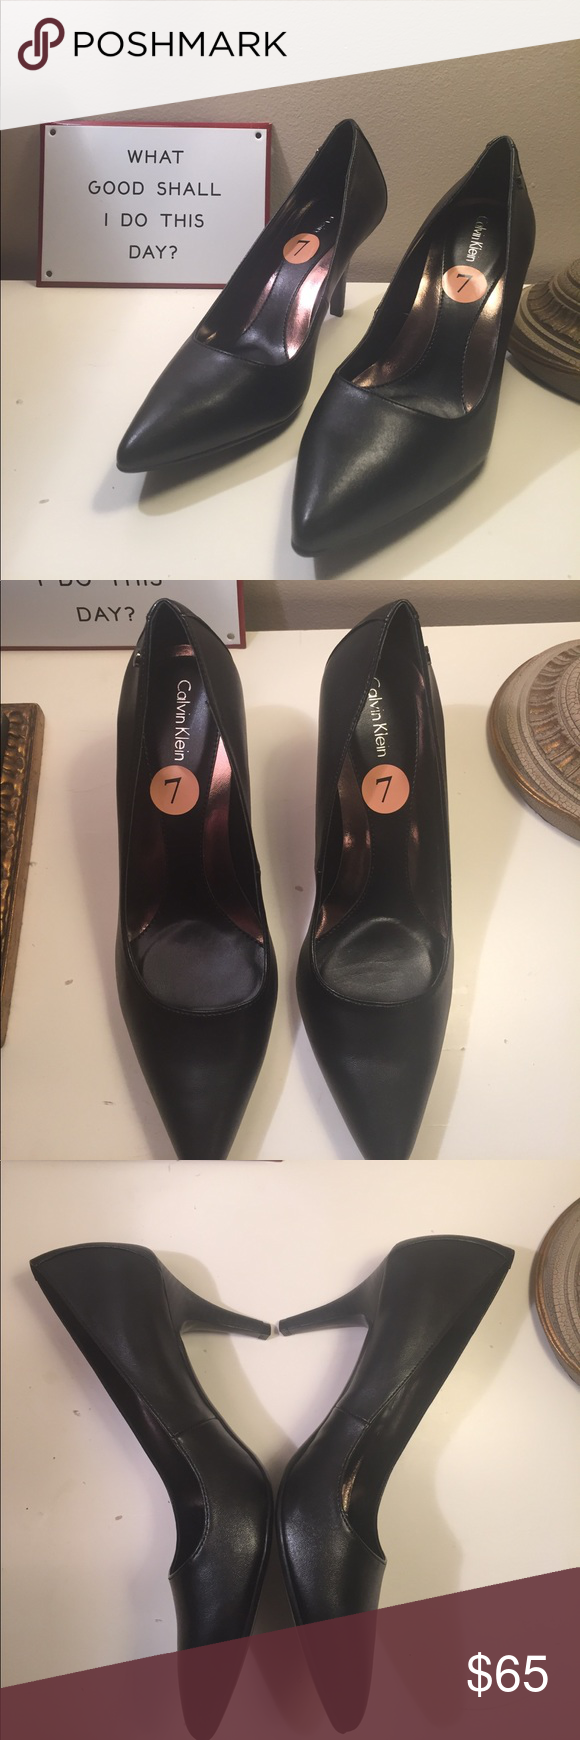 d0f516433c6 New Calvin Klein Brady Leather Pointed Toe Pump Calvin Klein Brady Leather  Pointed Toe Pump -